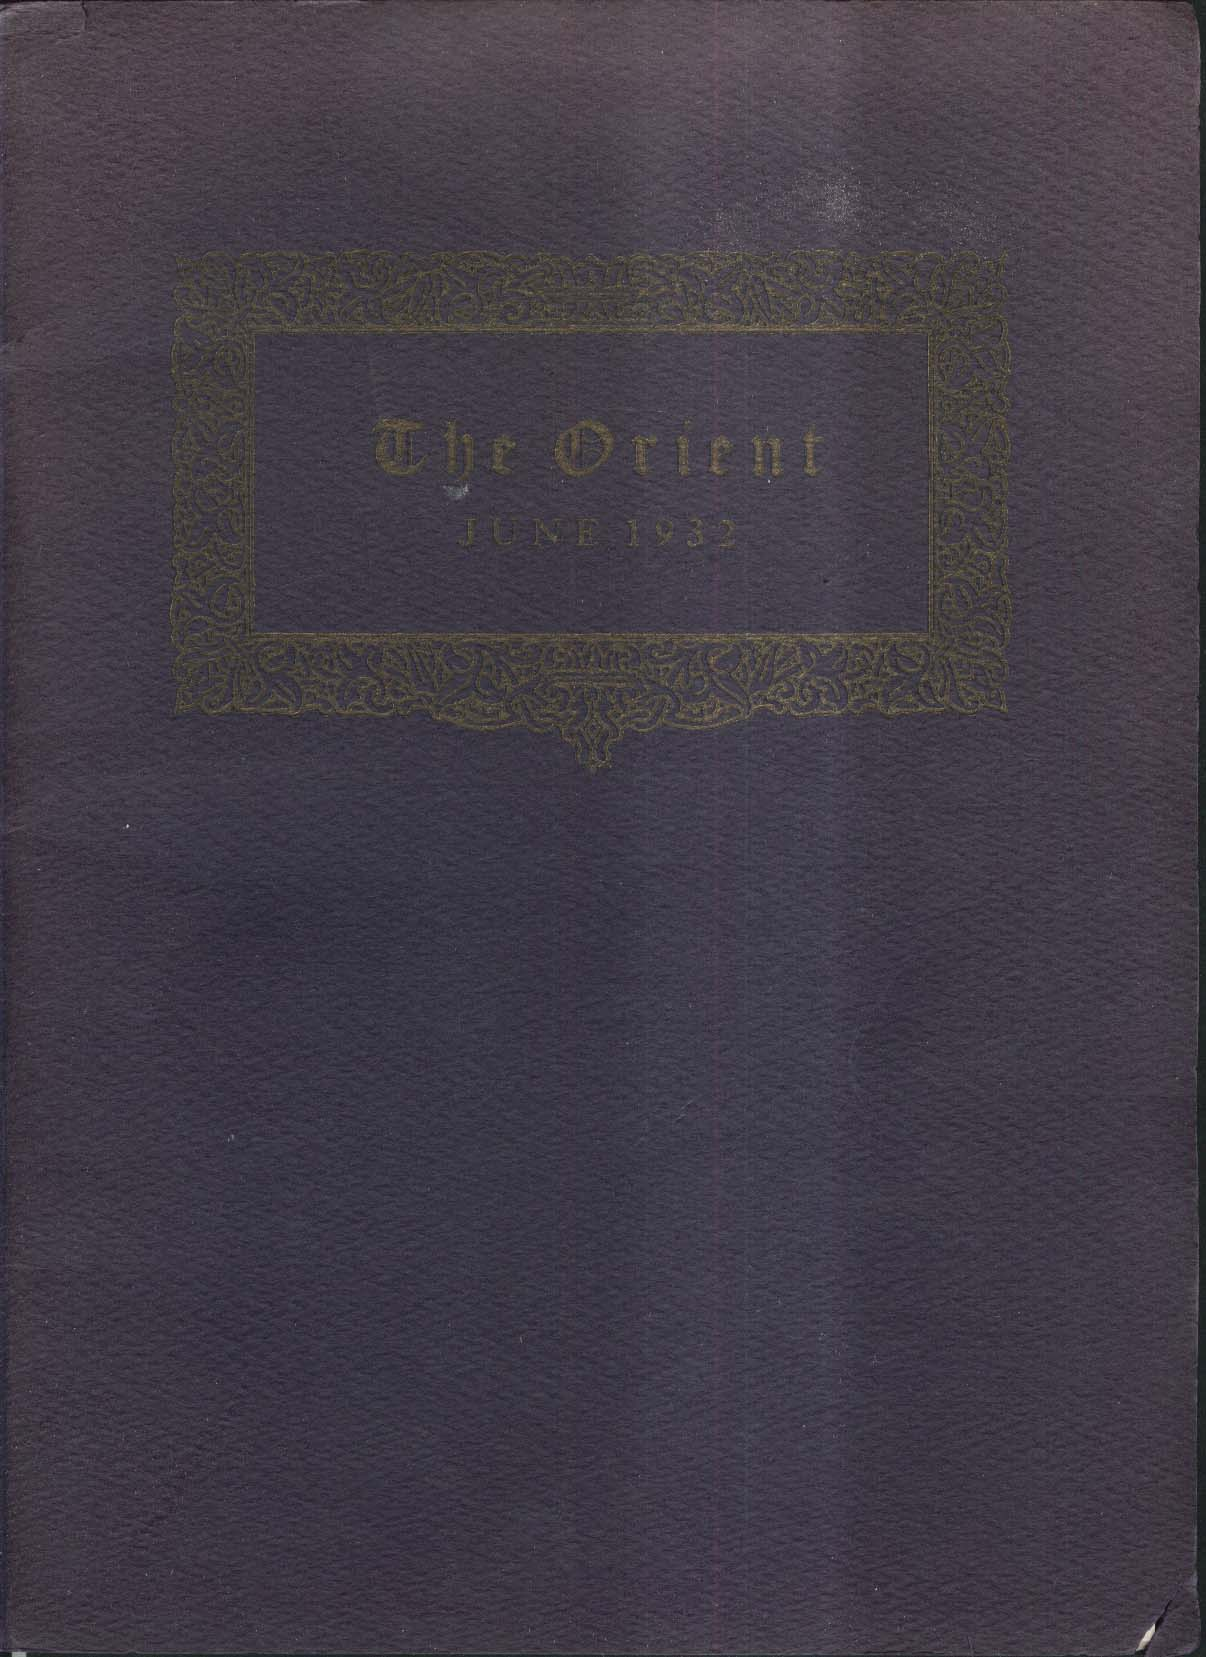 Image for The Orient 1932 East High School Rochester New York Yearbook